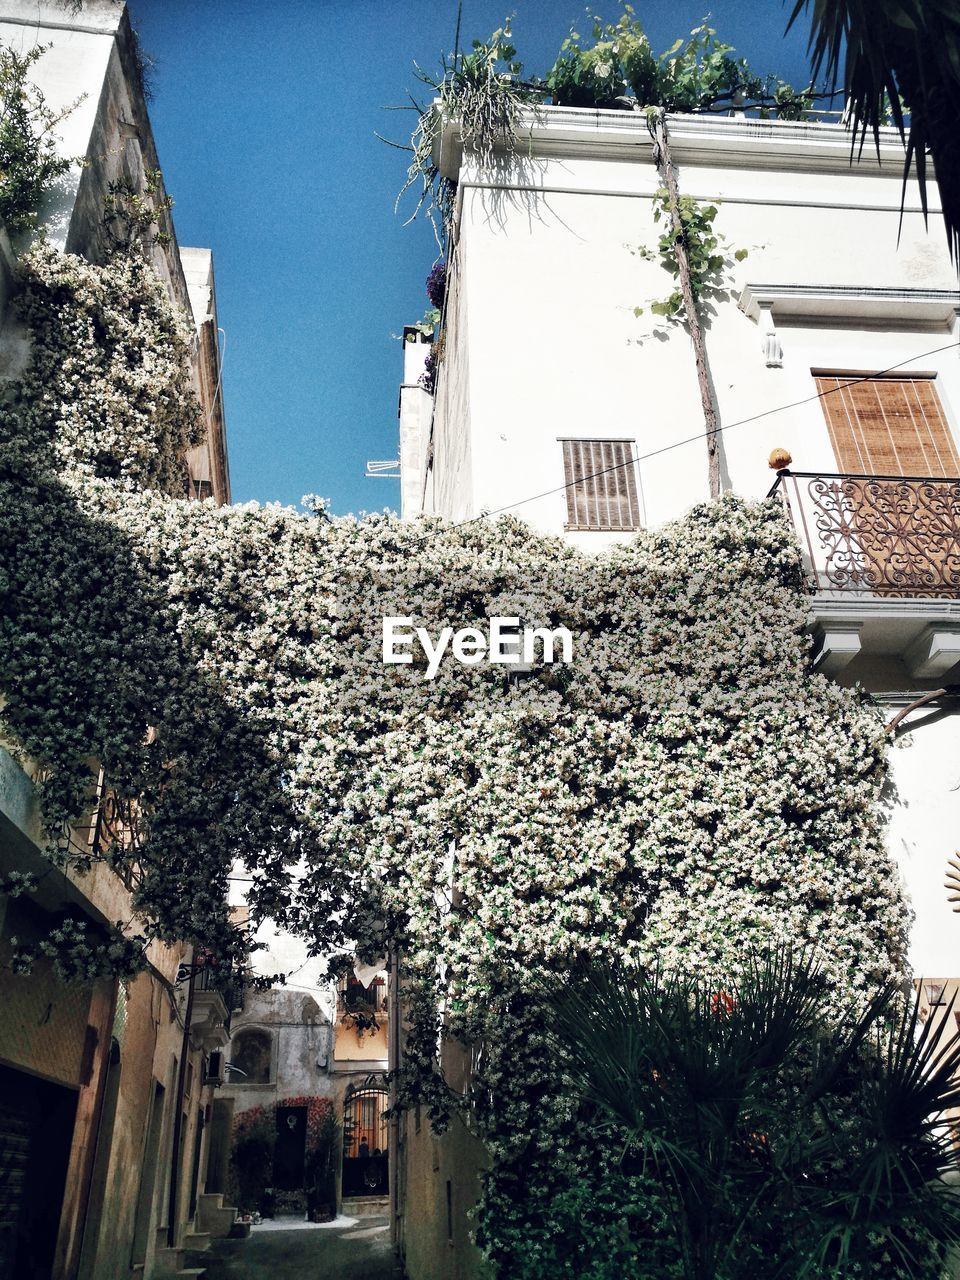 built structure, architecture, building exterior, plant, building, residential district, growth, nature, house, flowering plant, flower, day, tree, no people, low angle view, outdoors, sky, window, freshness, sunlight